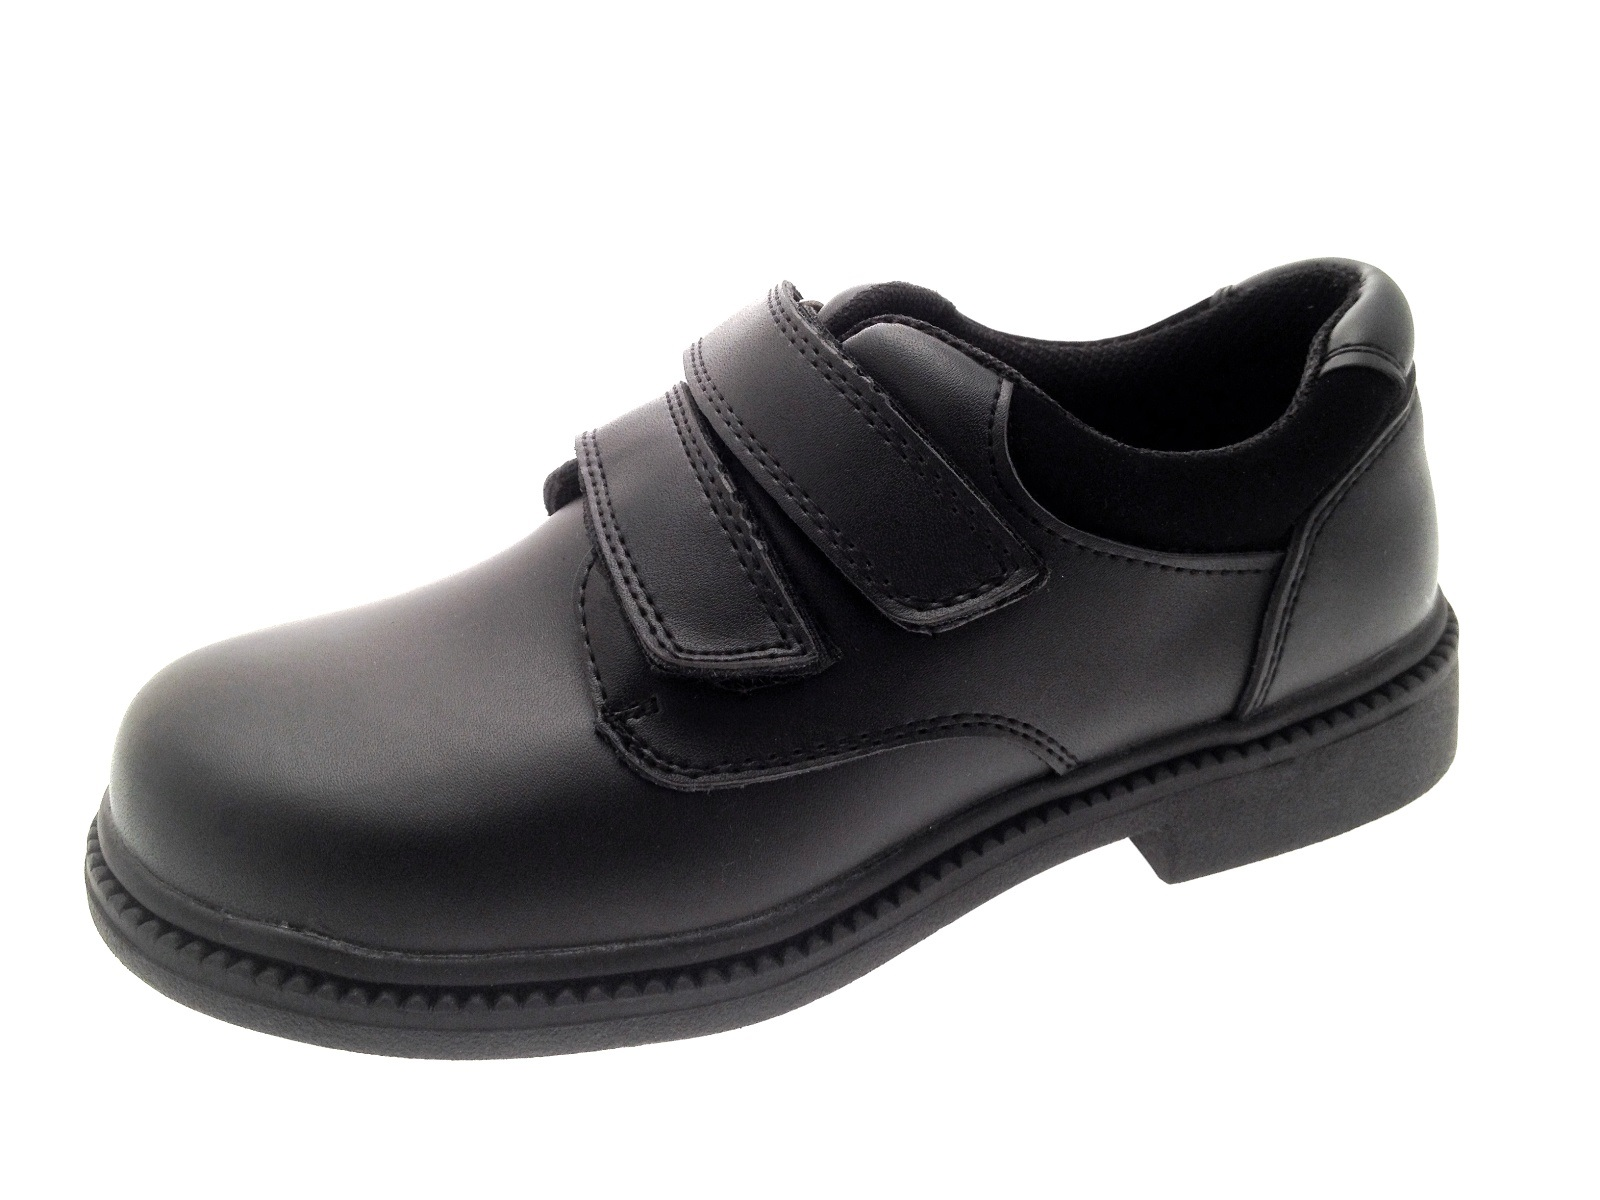 Kids Boys Black Leather School Shoes Lace Up Velcro Slip On Trainers ... bf390f292